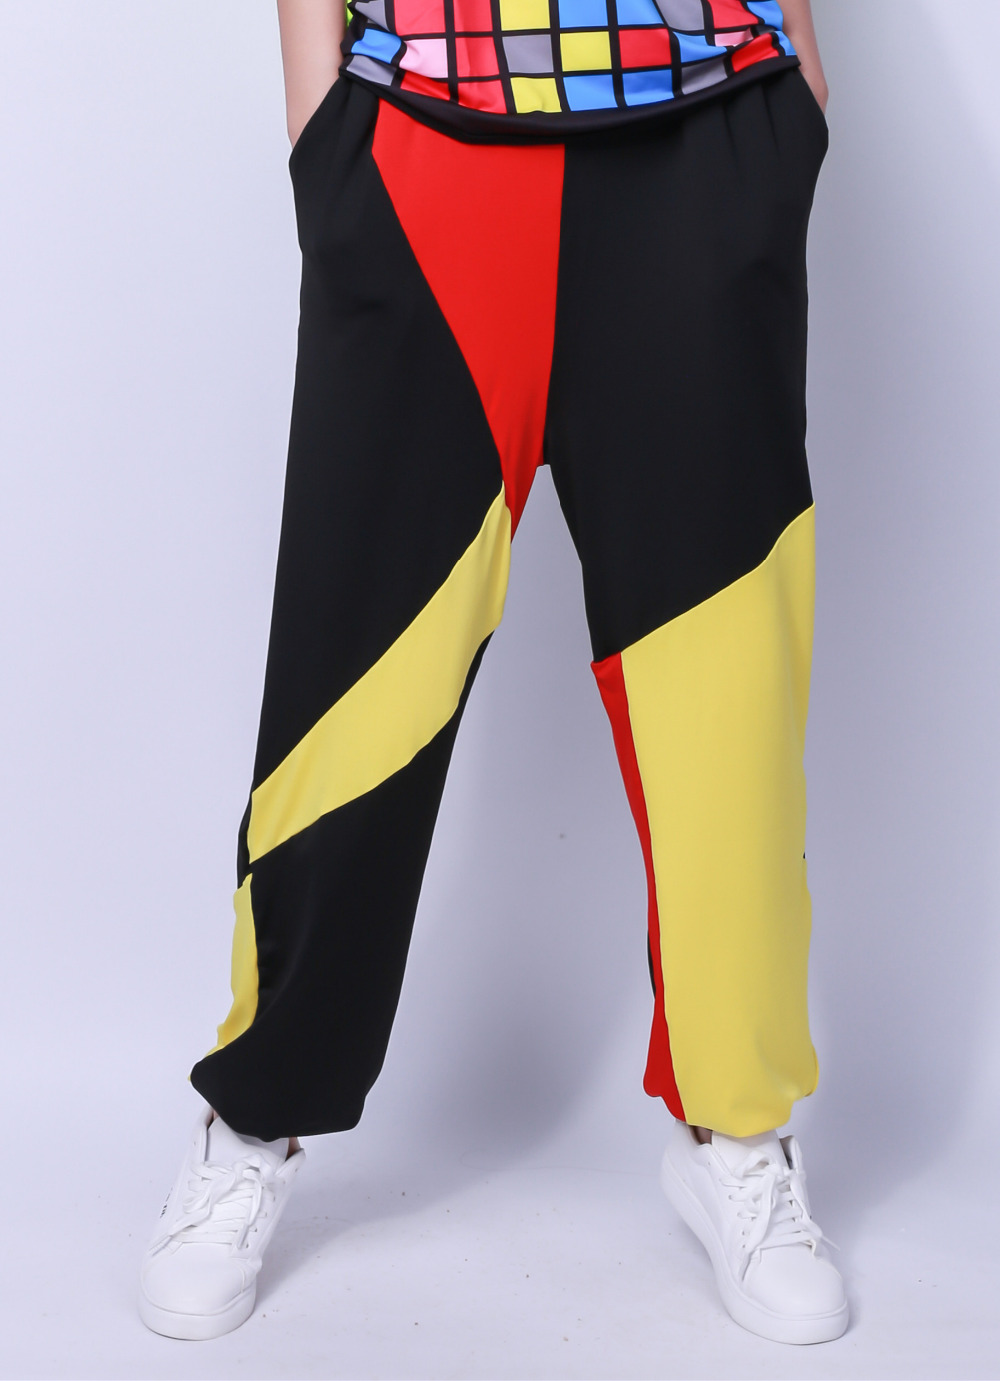 Kids Adult Brand Spring Summer Sweatpants Costumes Wear thin Yellow Red Black patchwork Panelled jazz harem Hip Hop Dance Pants